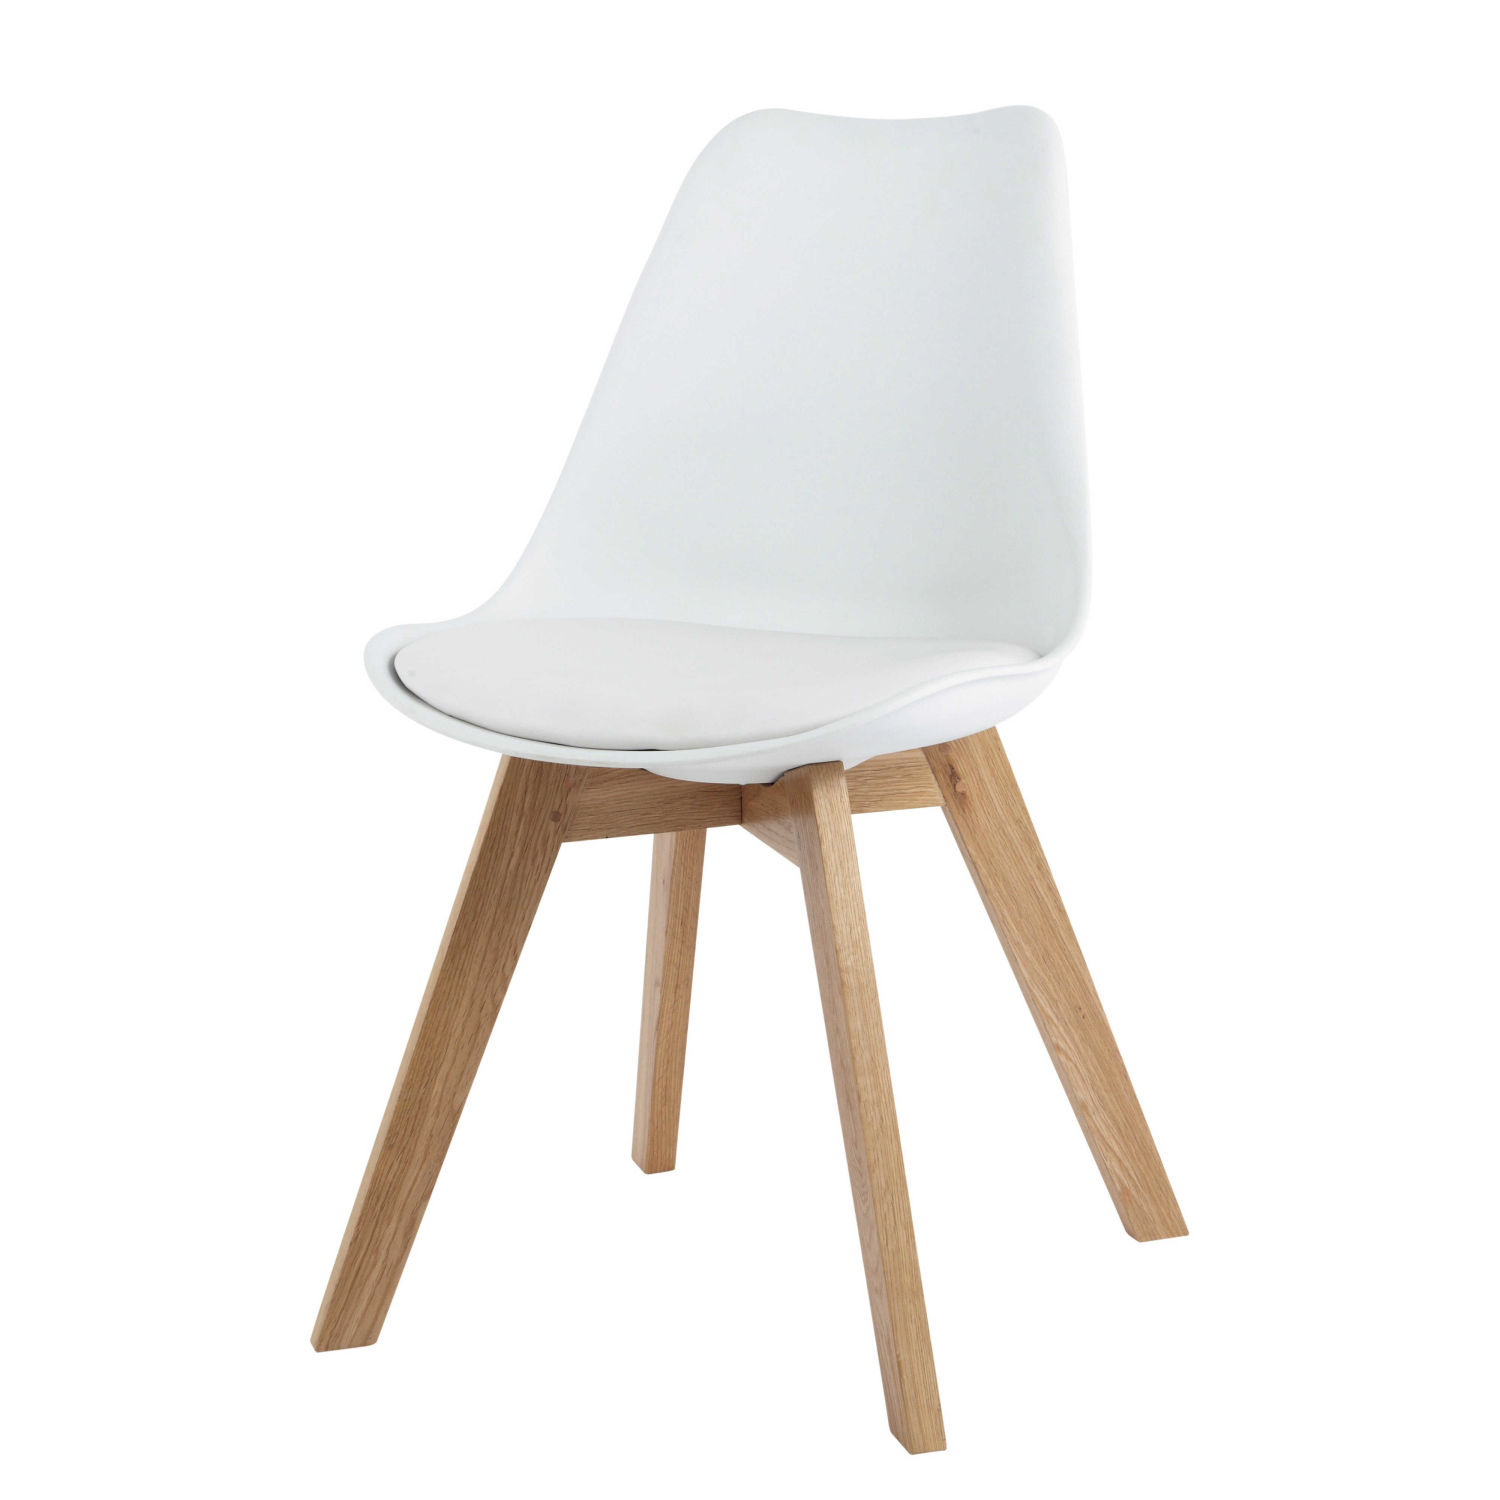 Chaise Style Scandinave Blanche Et Chene Massif Ice Maisons Du Monde